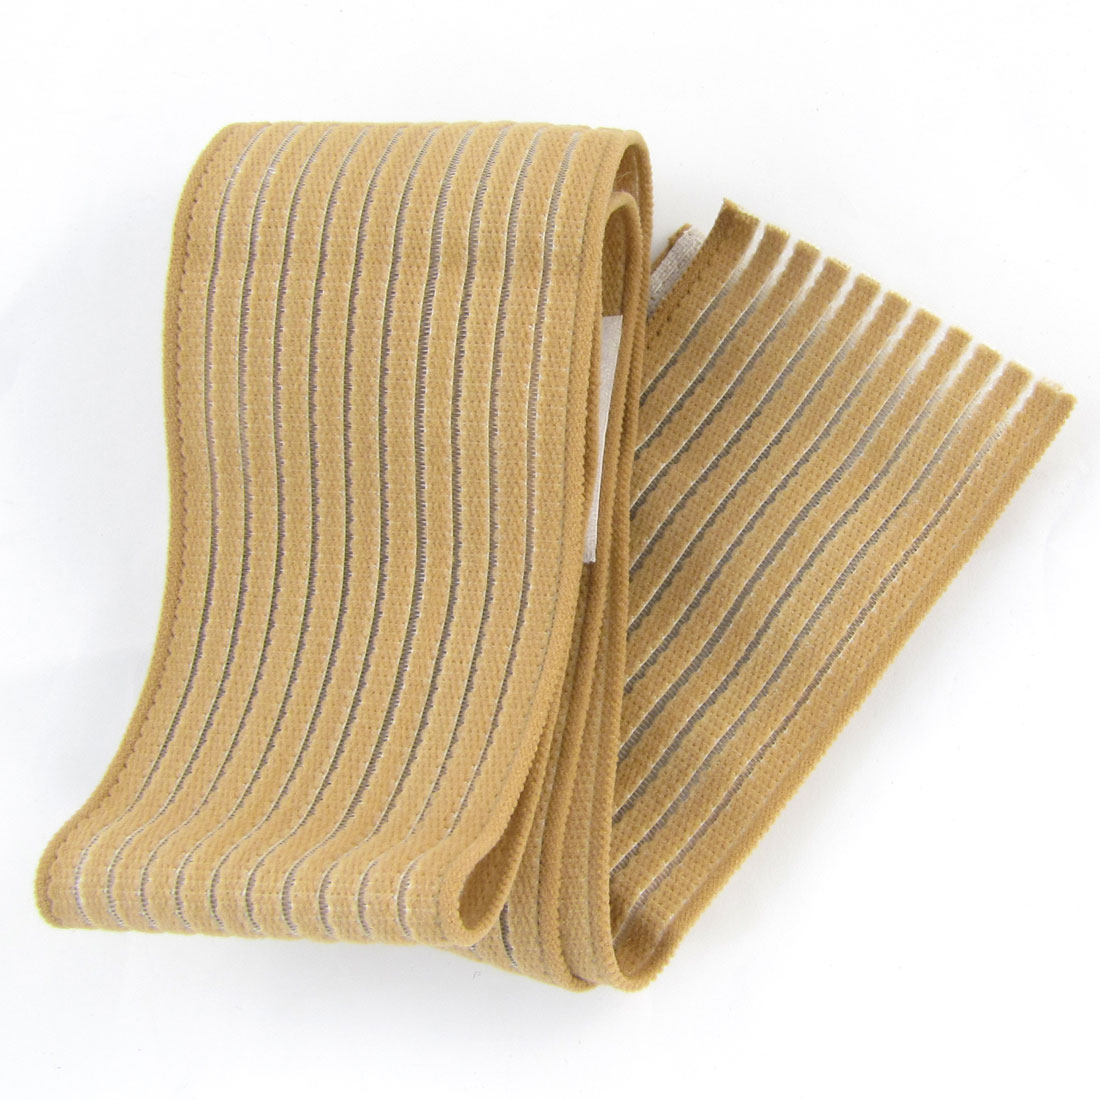 Brown Elastic Band Stretchy Fabric Athletic Sports Ankle Protector